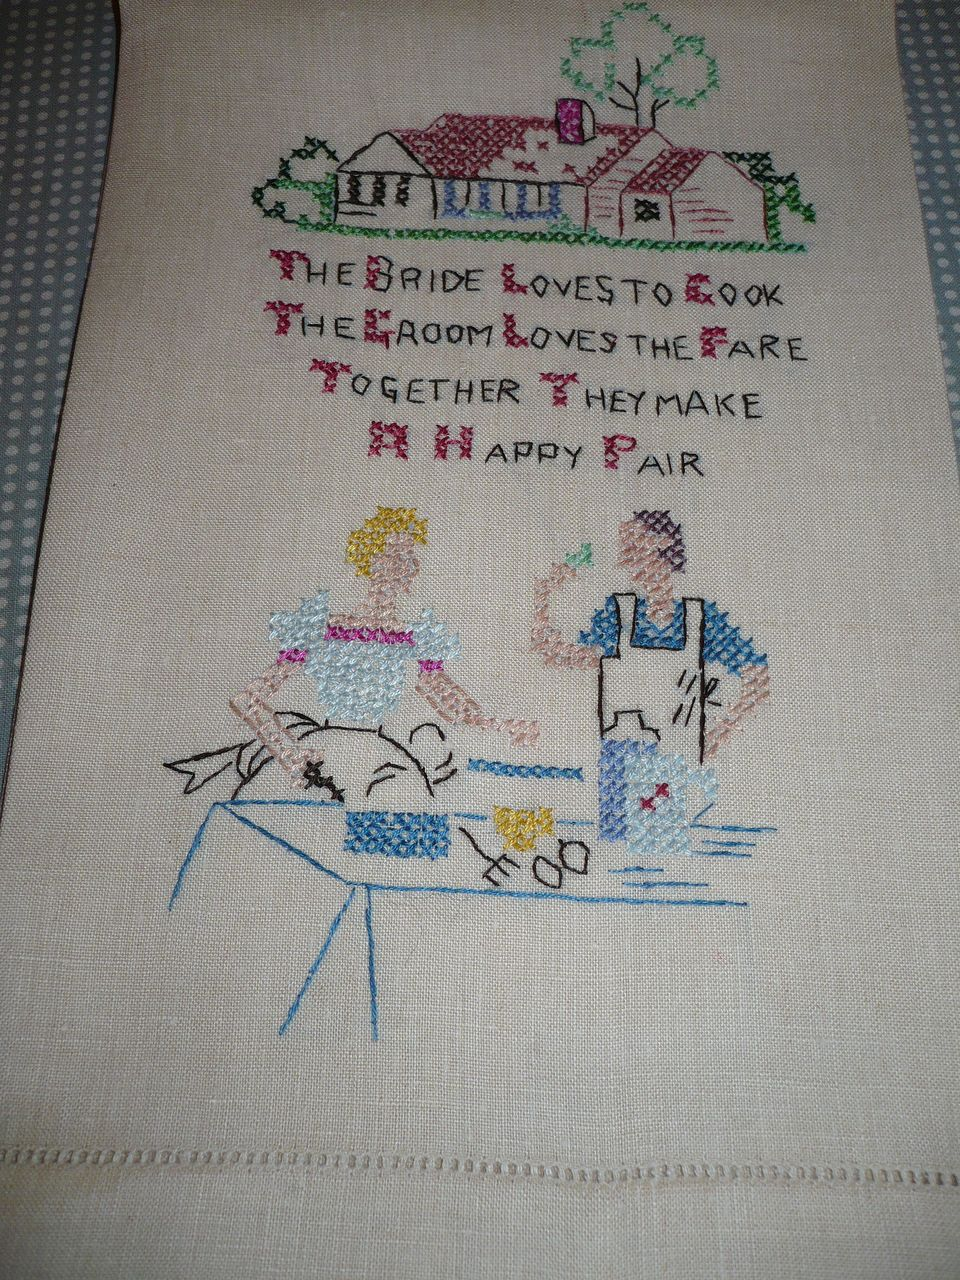 Vintage Bride & Groom Embroidered Towel